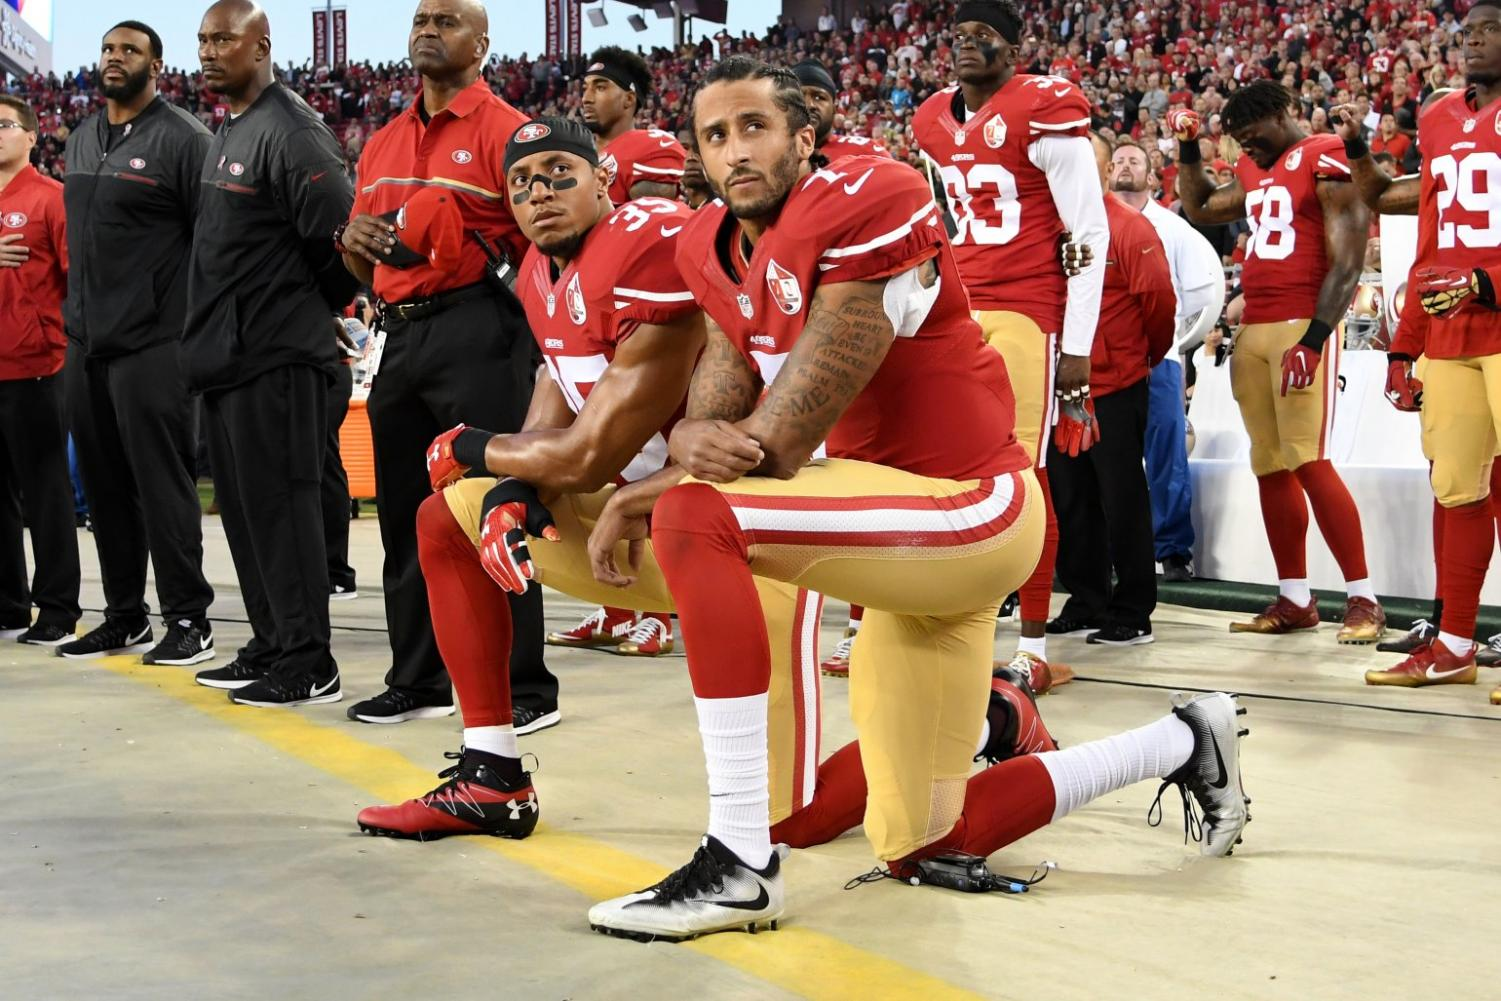 Colin Kaepernick kneeling at Levi's Stadium on Sep. 12, 2016.